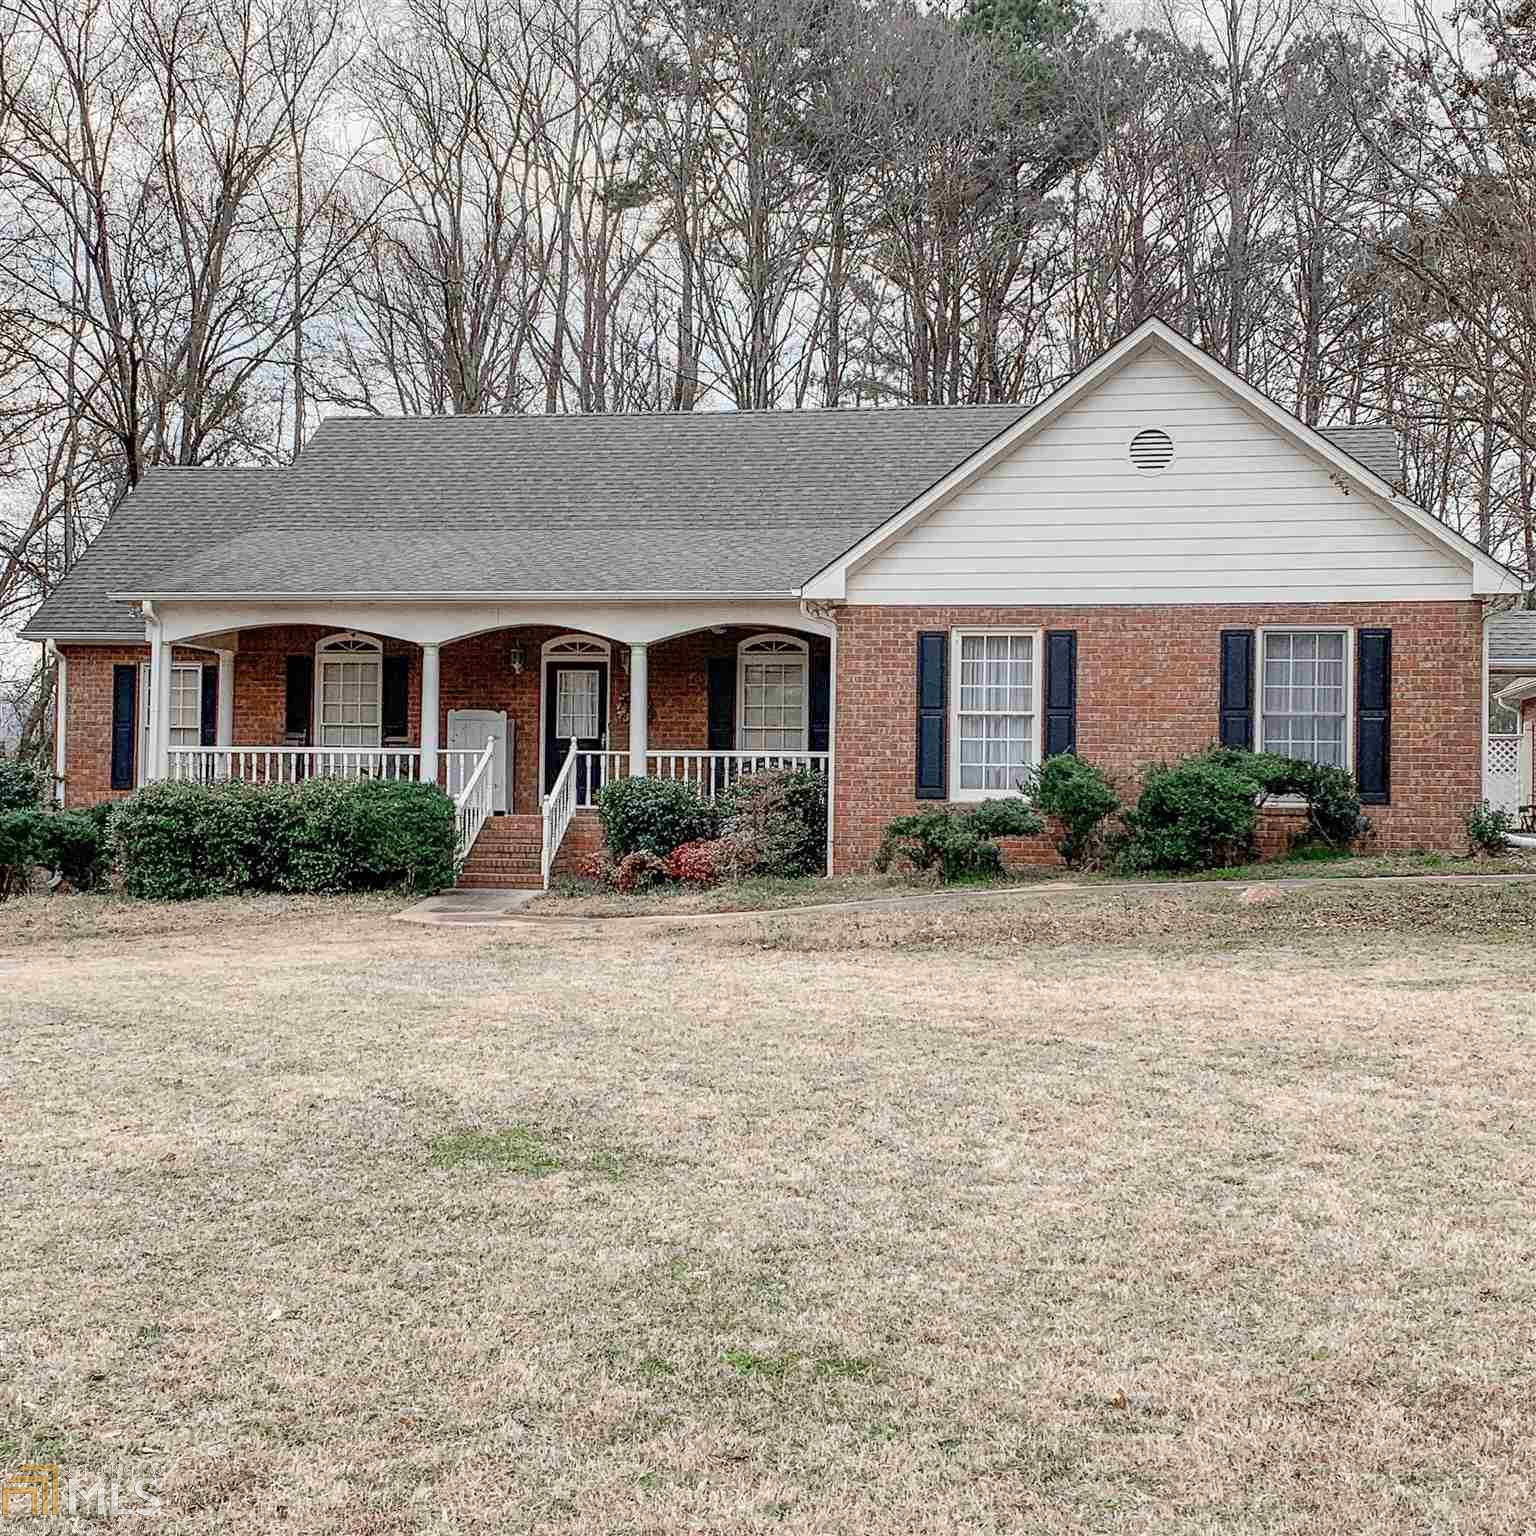 319 Greenfield Rd, Hiram, Georgia 30141, 3 Bedrooms Bedrooms, ,2 BathroomsBathrooms,Single Family,For Sale,319 Greenfield Rd,1,8941816